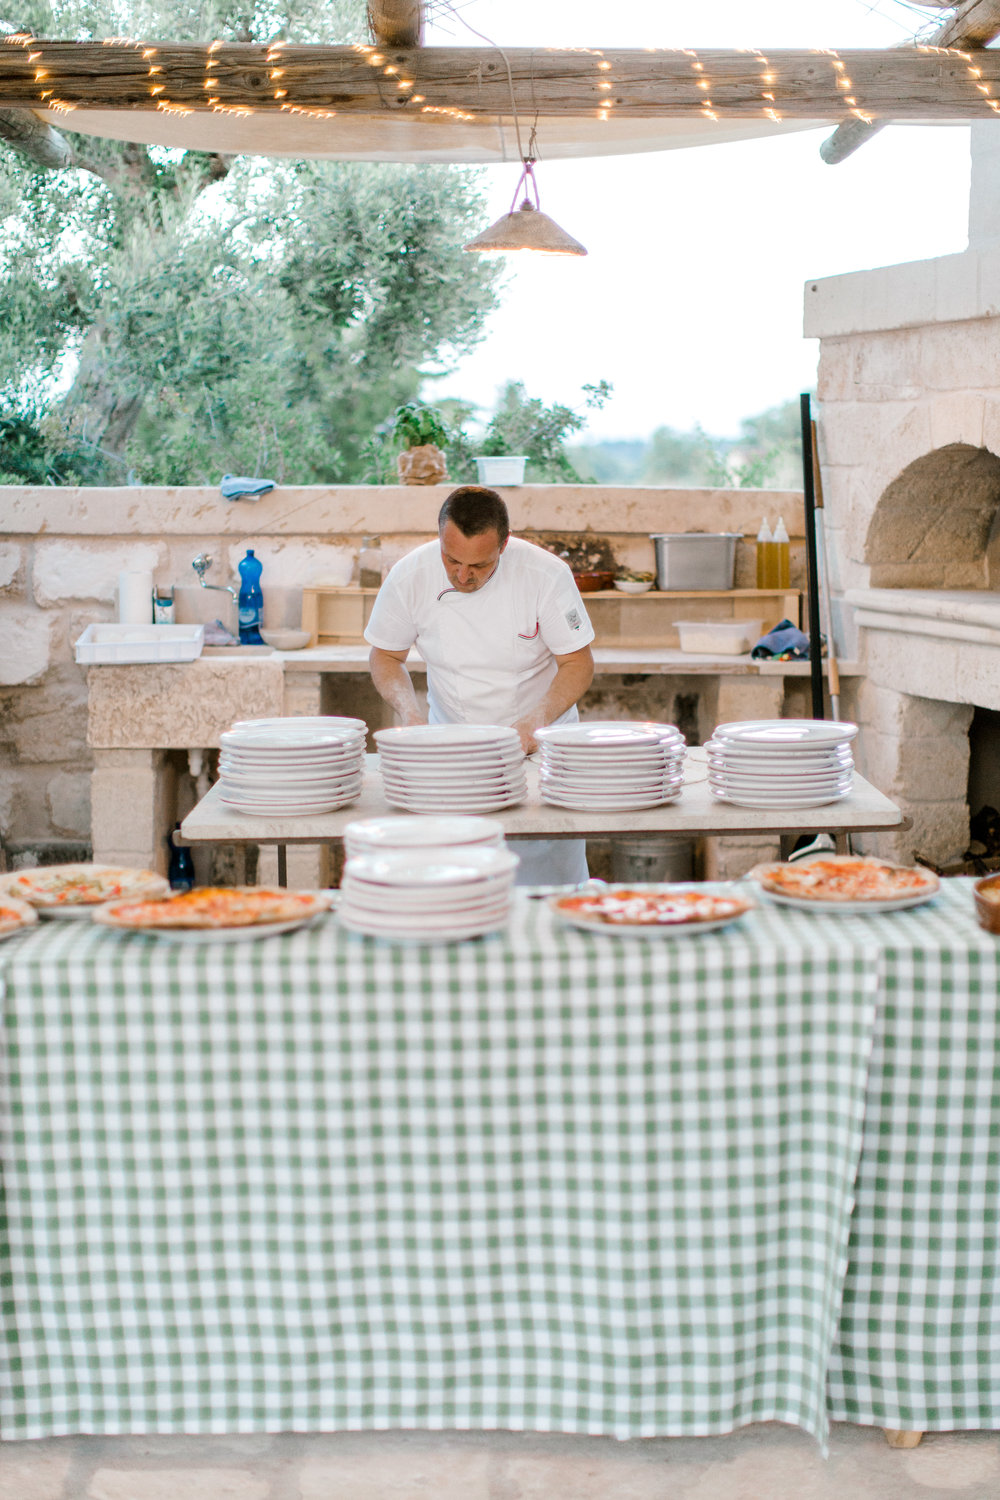 Wood fired oven destination wedding in Puglia, Italy - planned by Meggie Francisco Events, photographed by Tracy Enoch